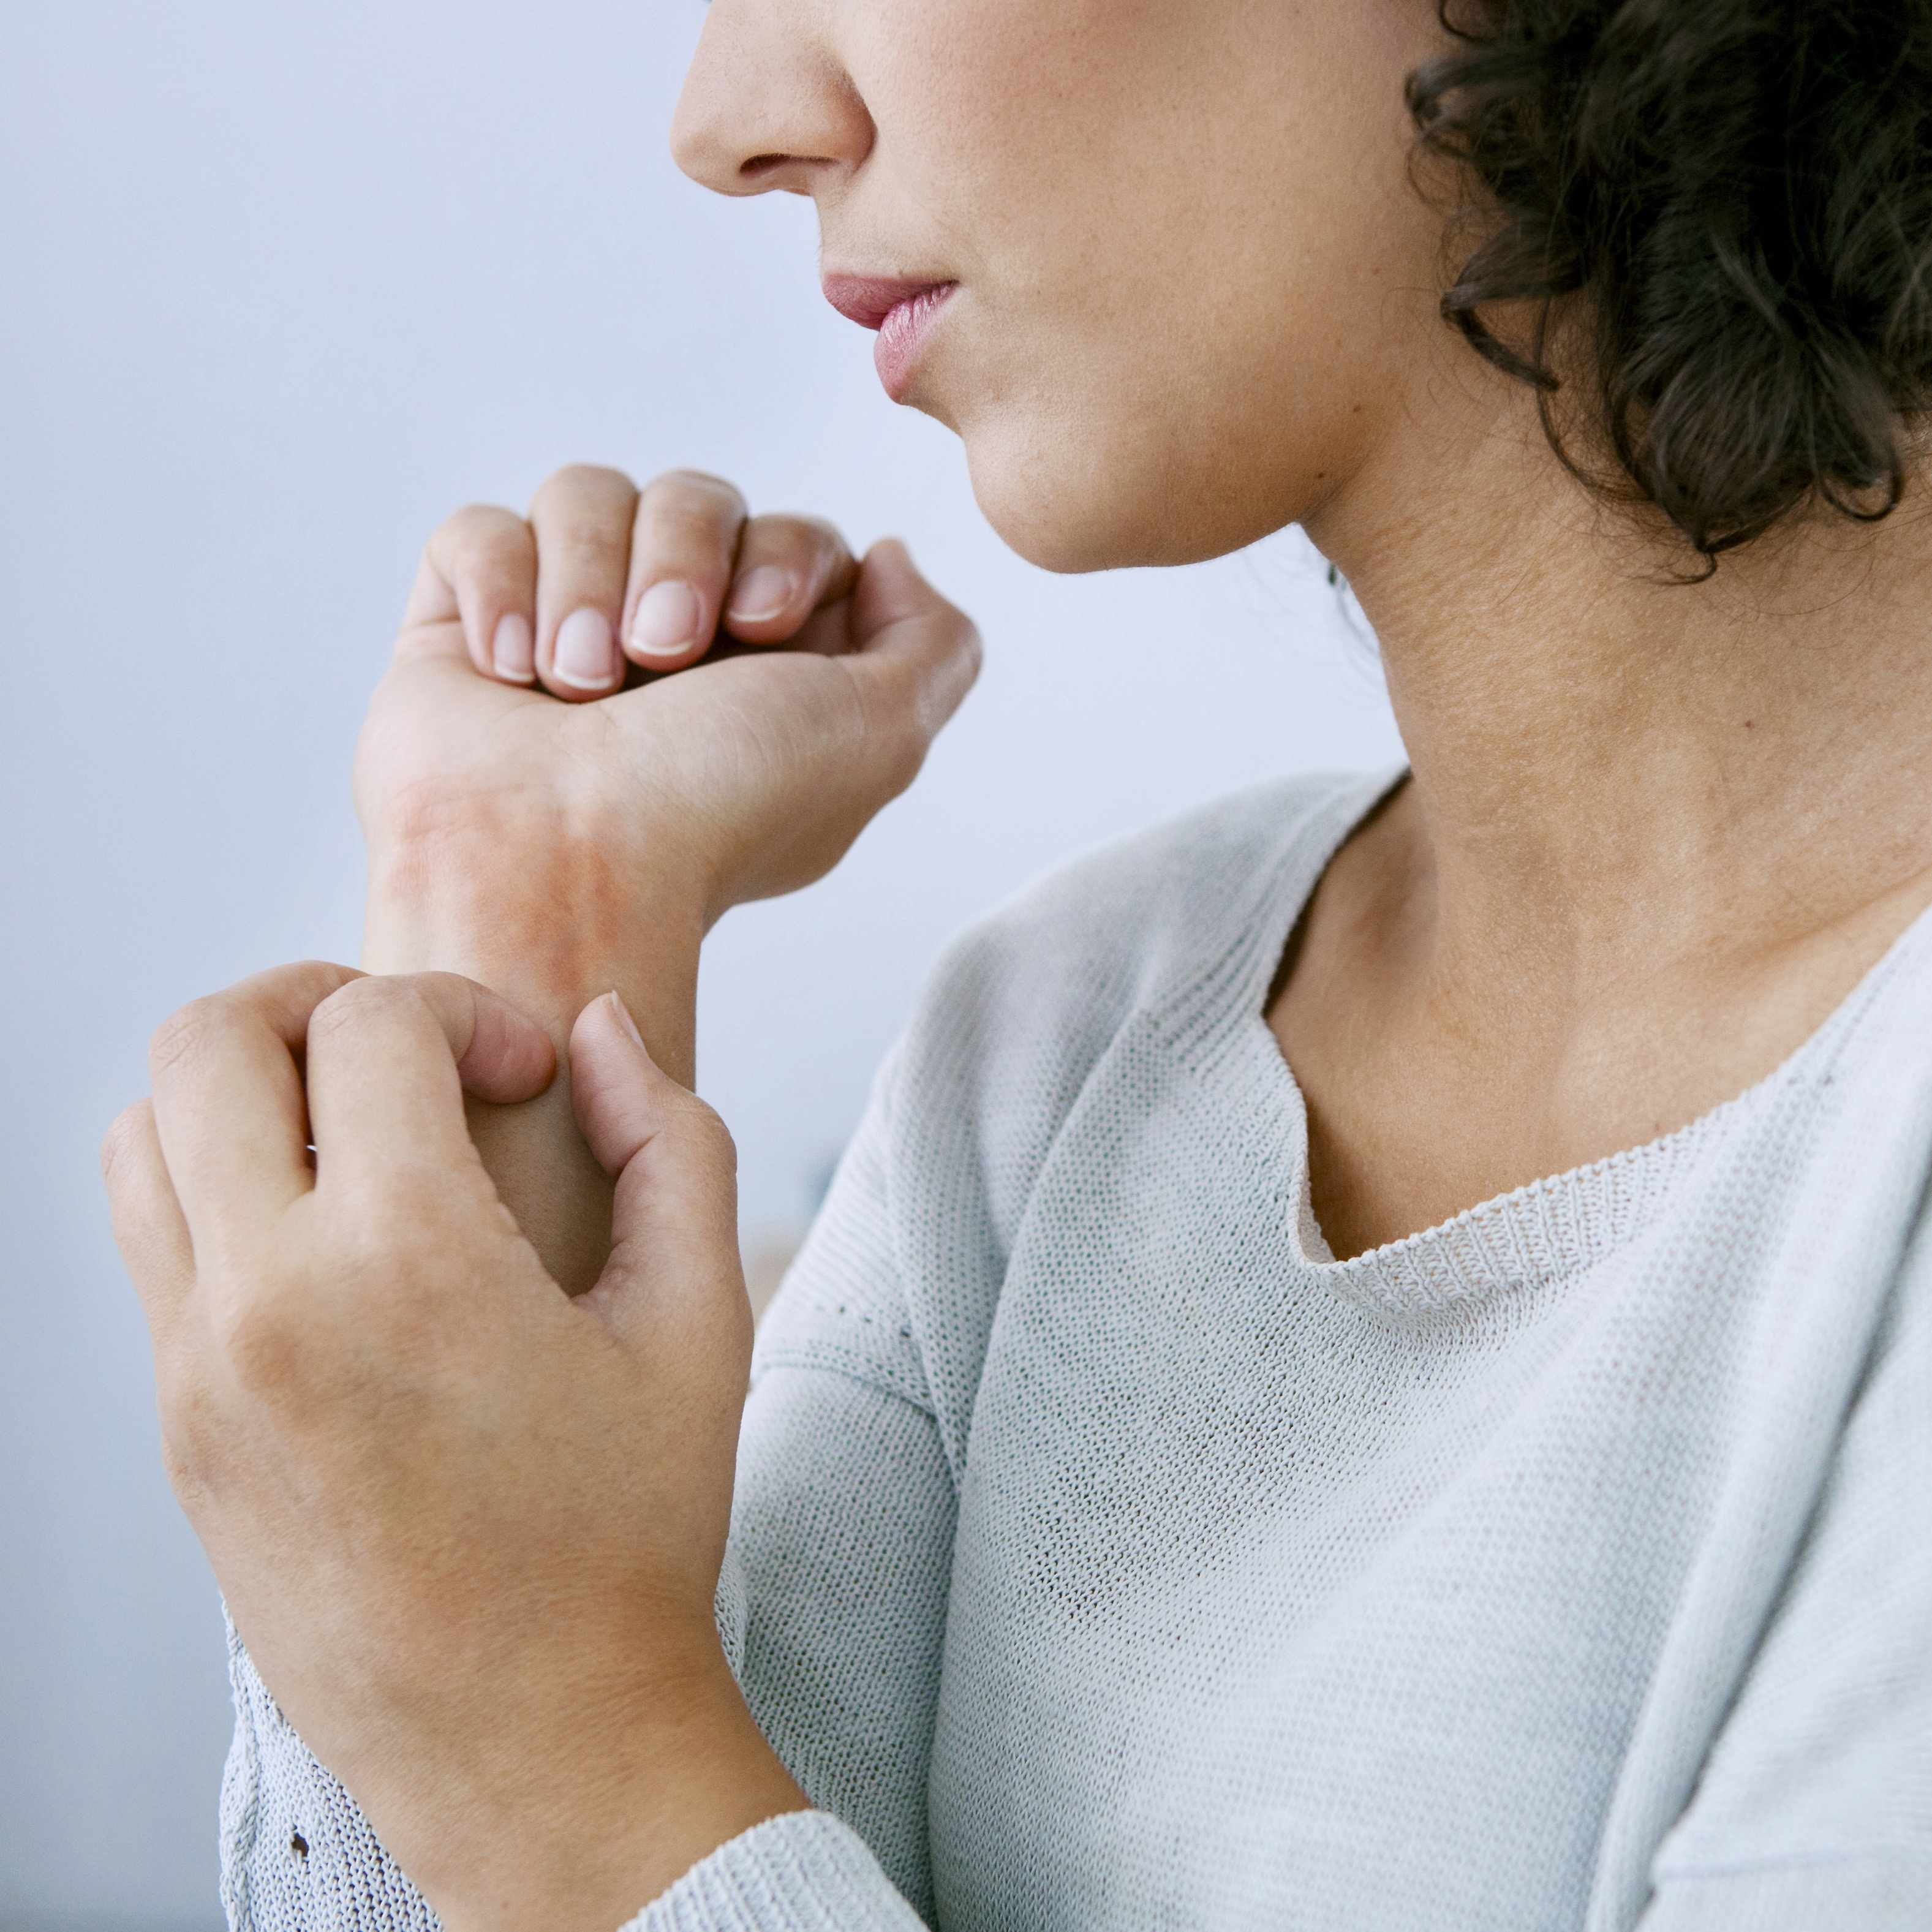 a woman scratching her itchy skin rash, hives